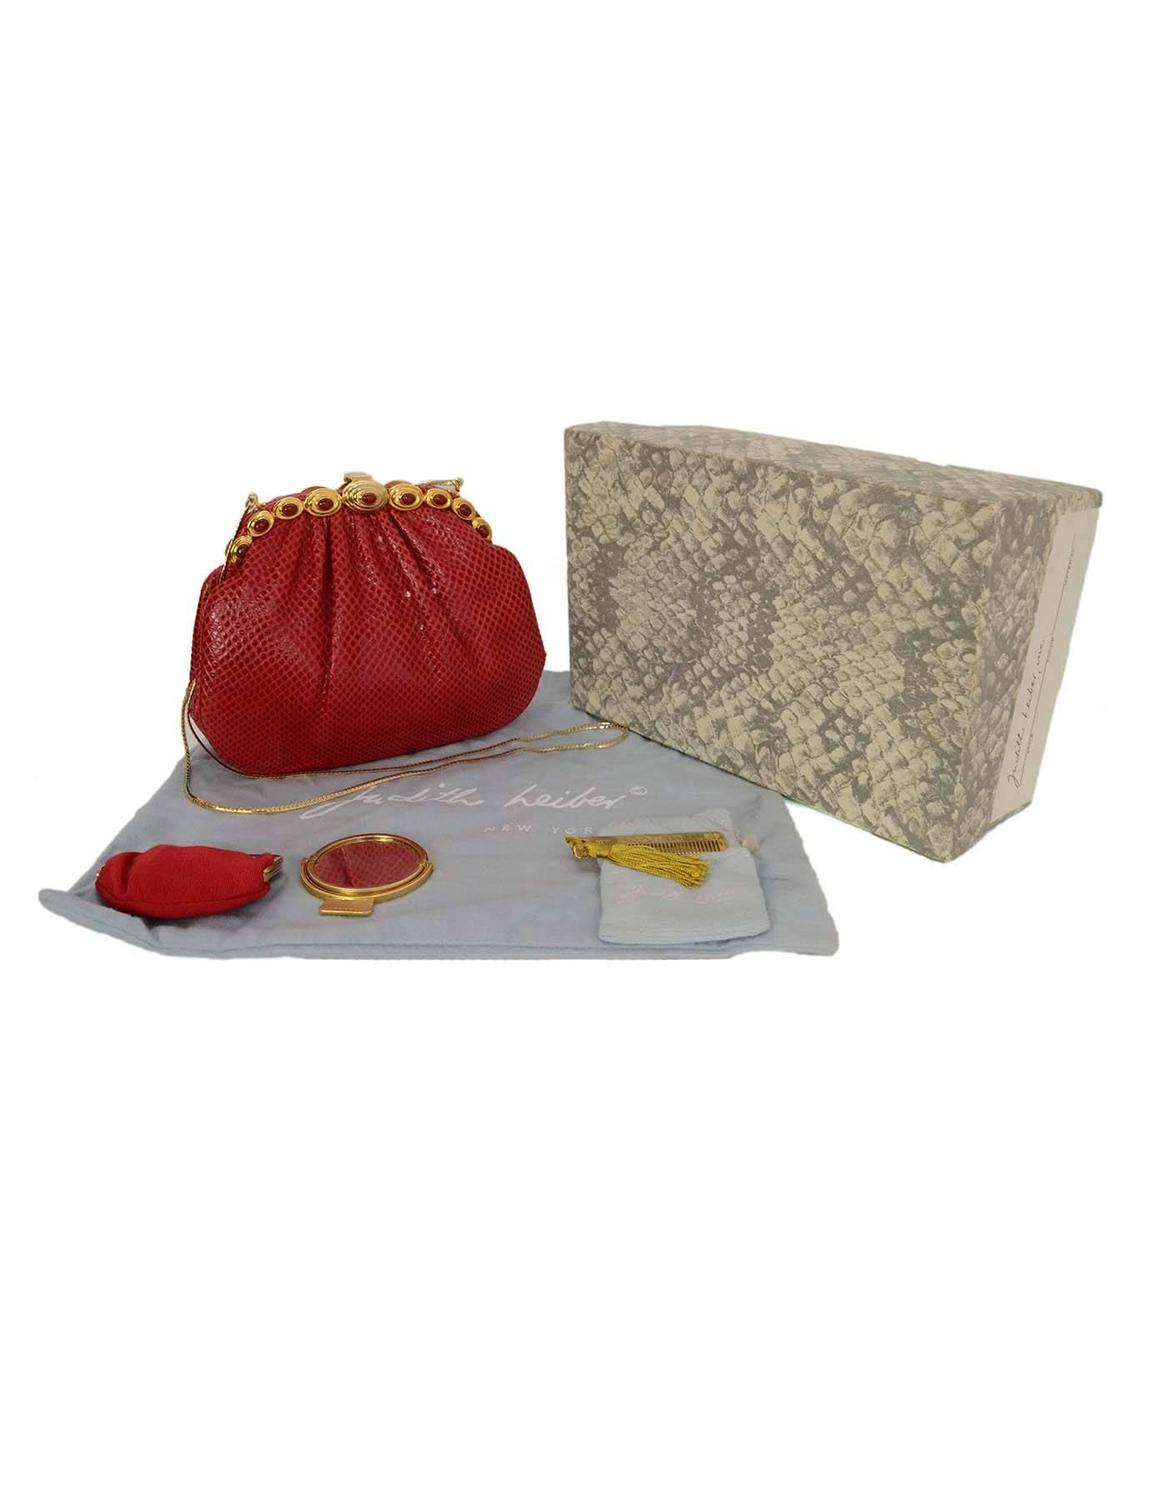 Judith Leiber Red Karung Snakeskin Clutch with GHW at 1stdibs